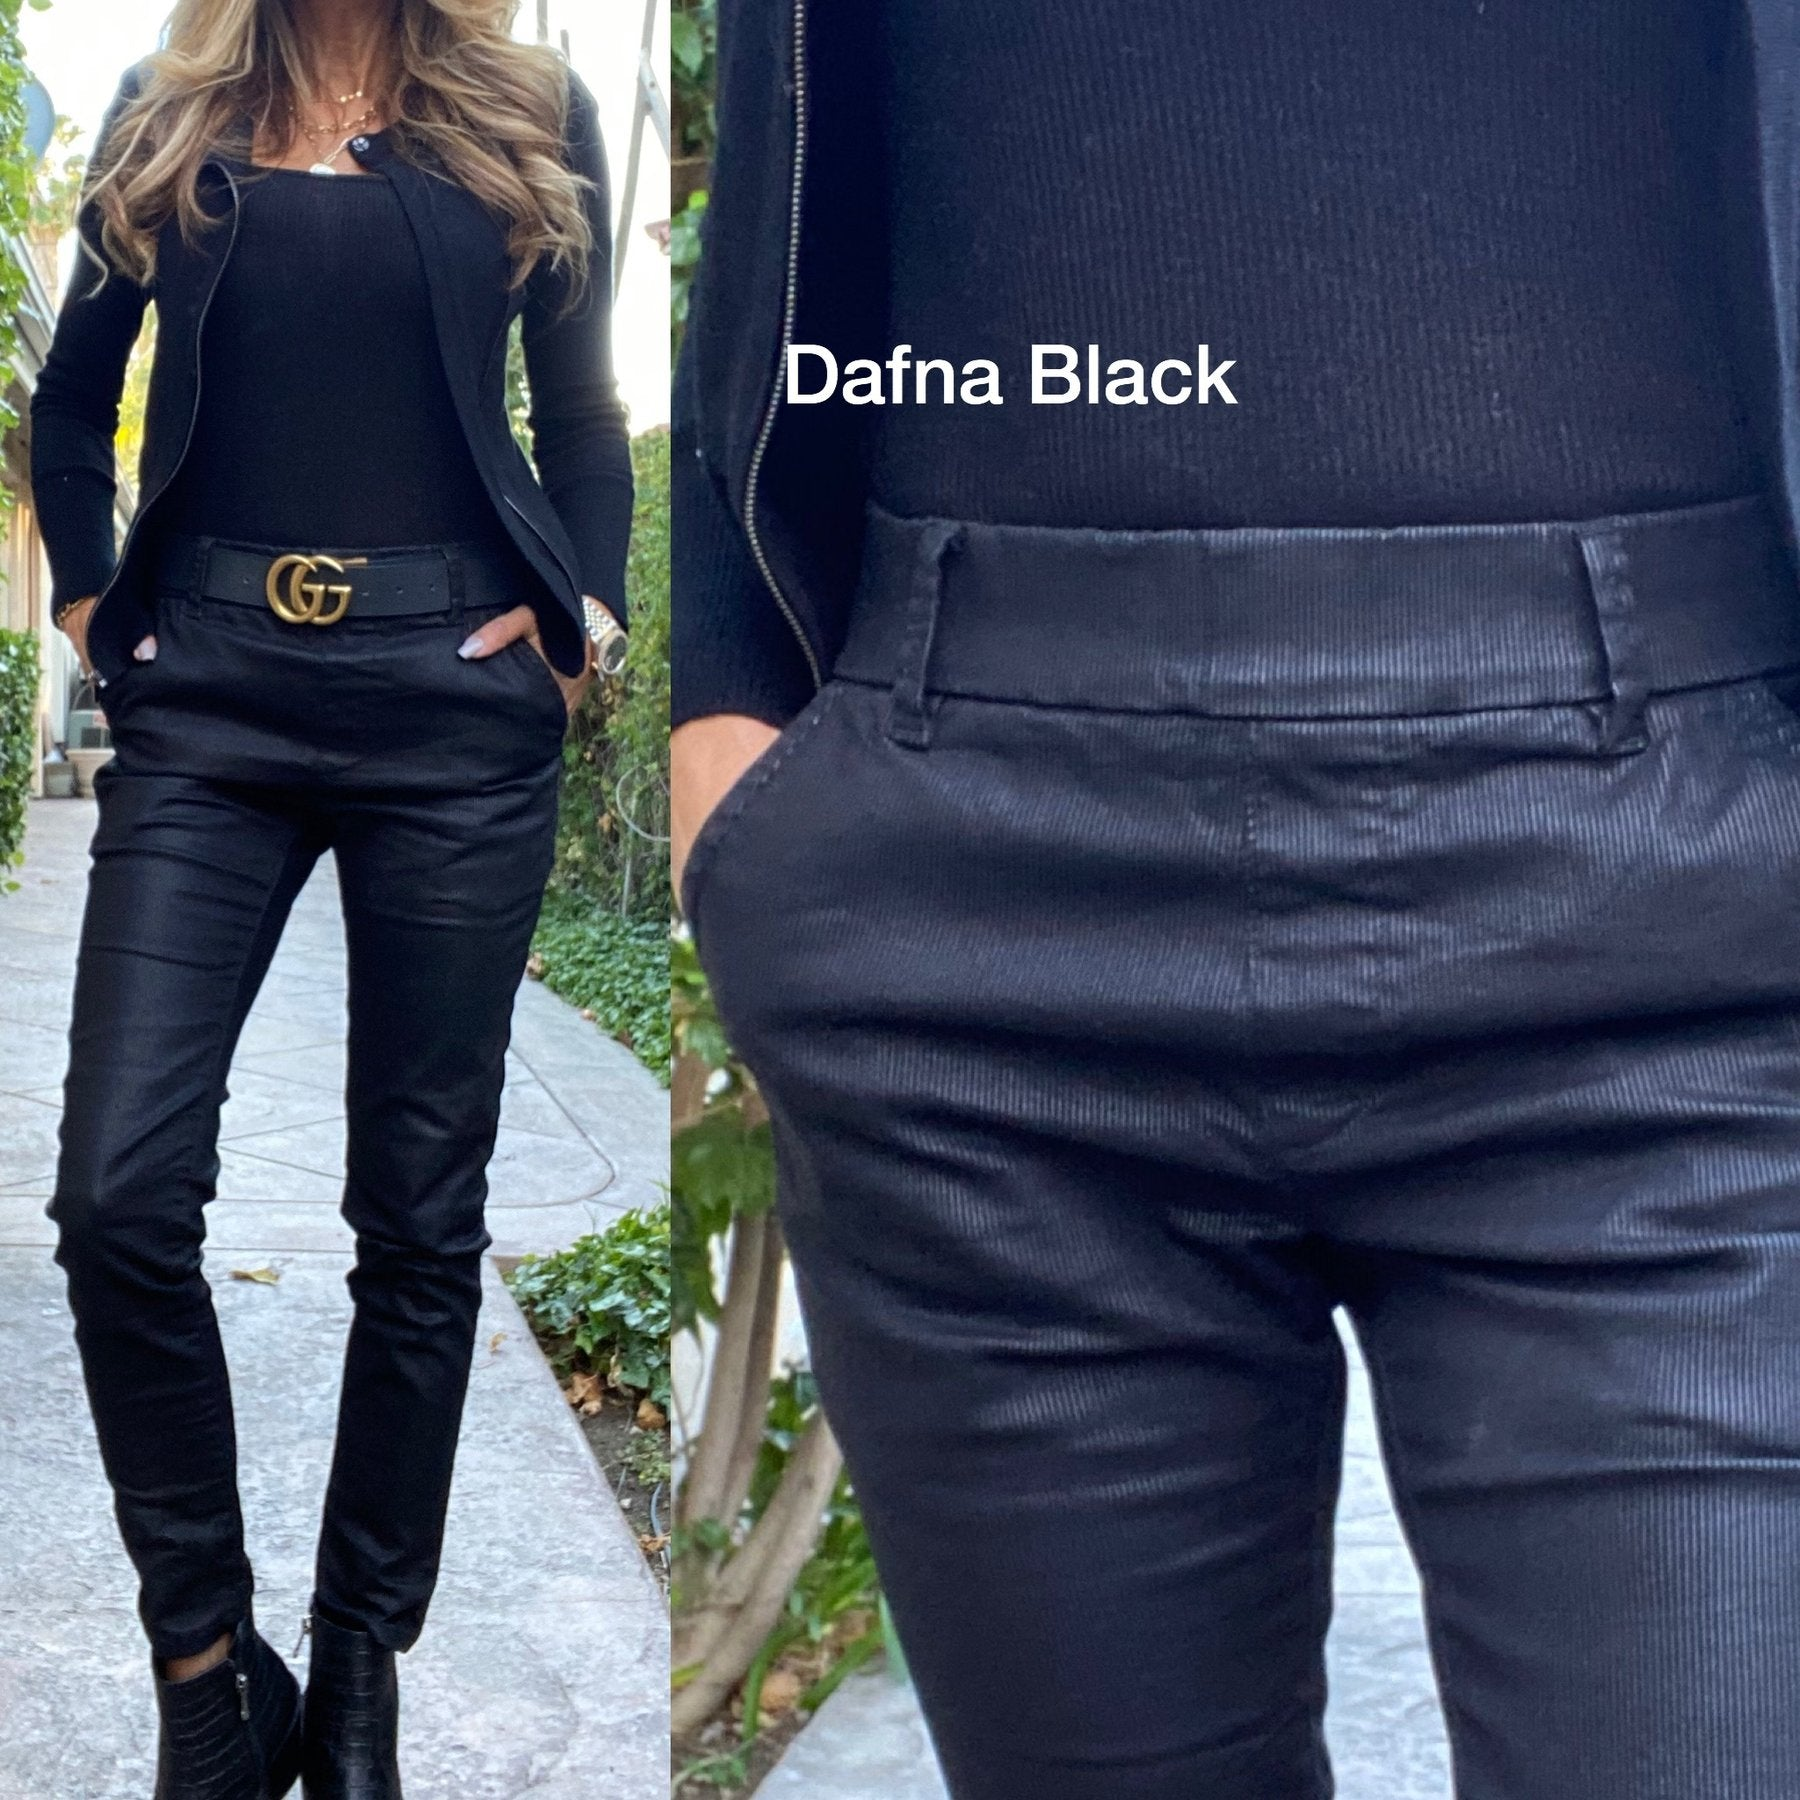 Dafna Black Original Pant